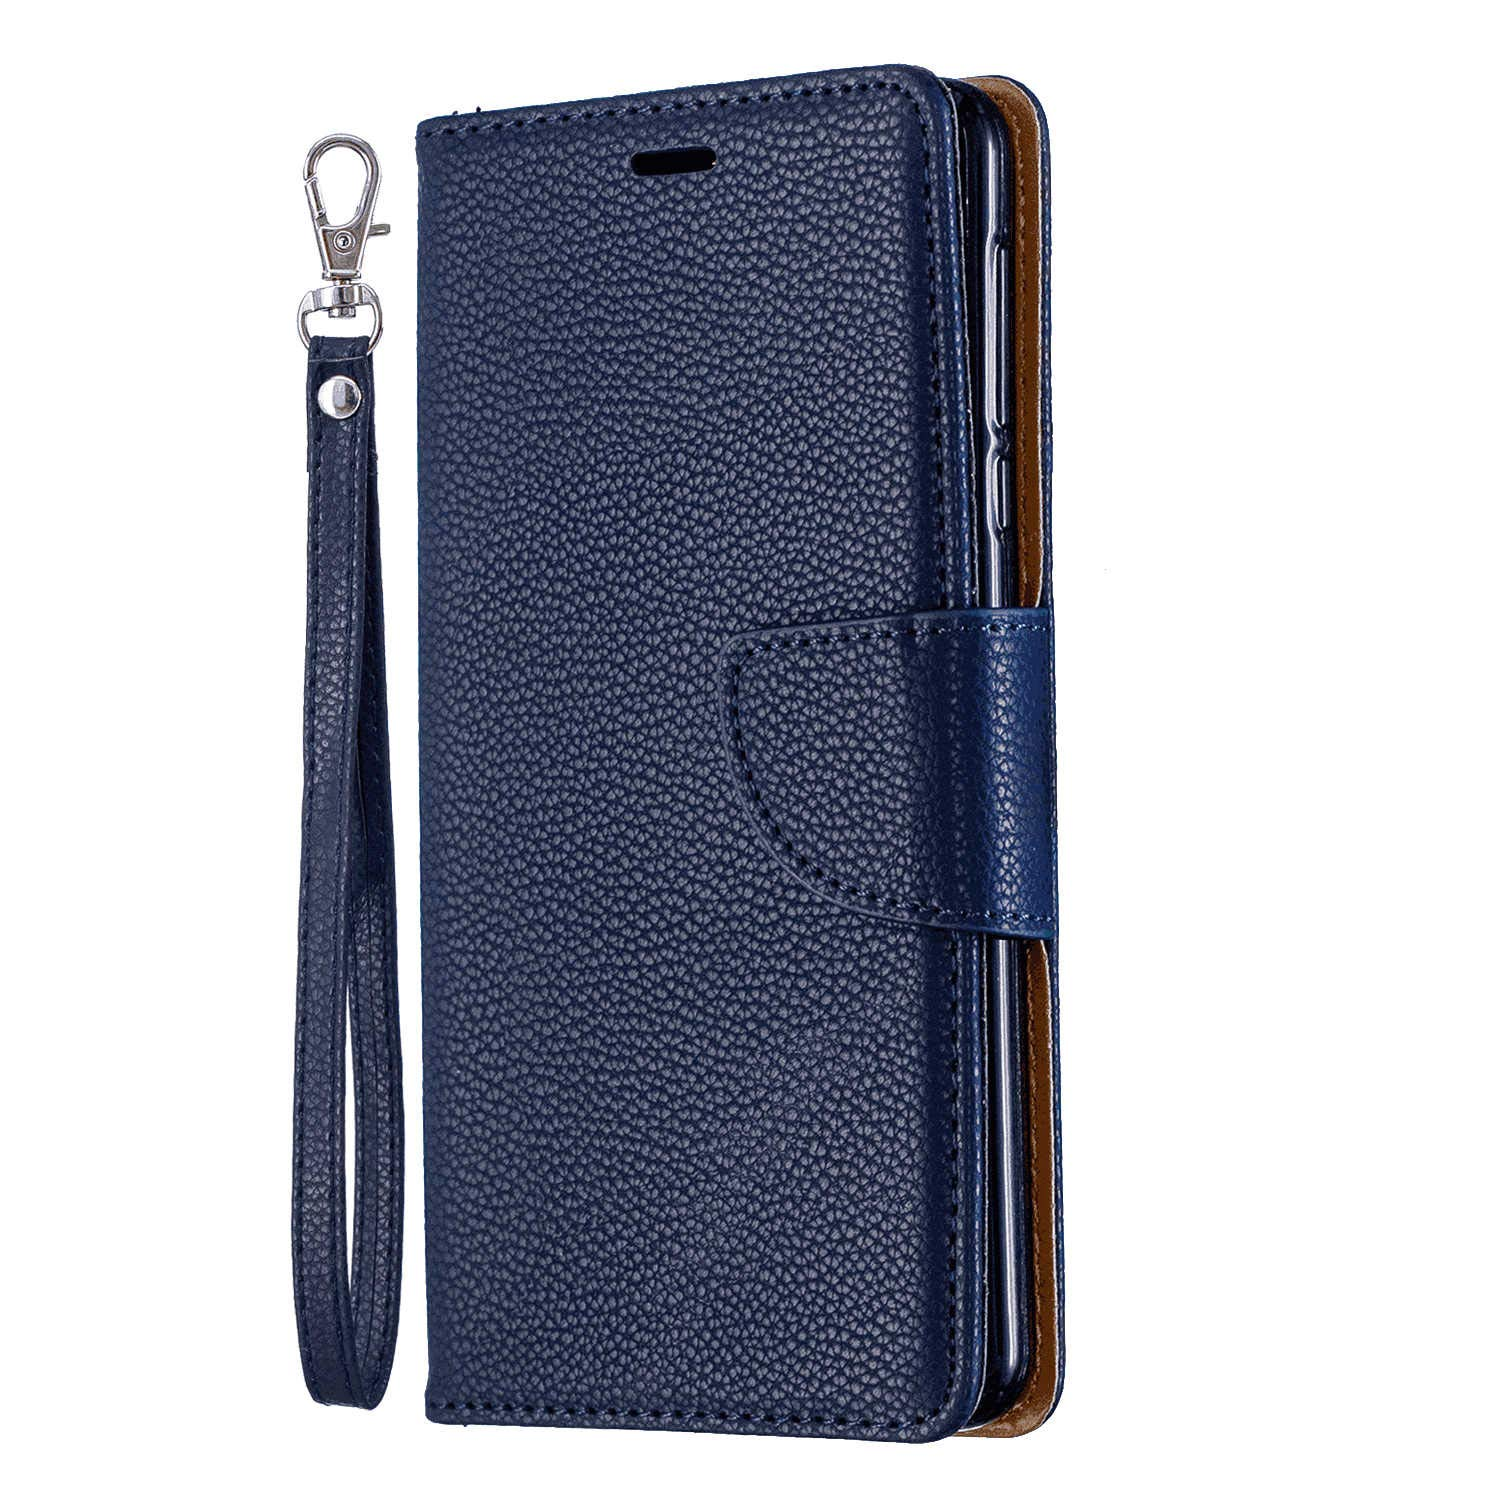 Dream2Fancy Flip Case for iPhone Xs, Leather Cover Business Gifts Wallet with Extra Waterproof Underwater Case